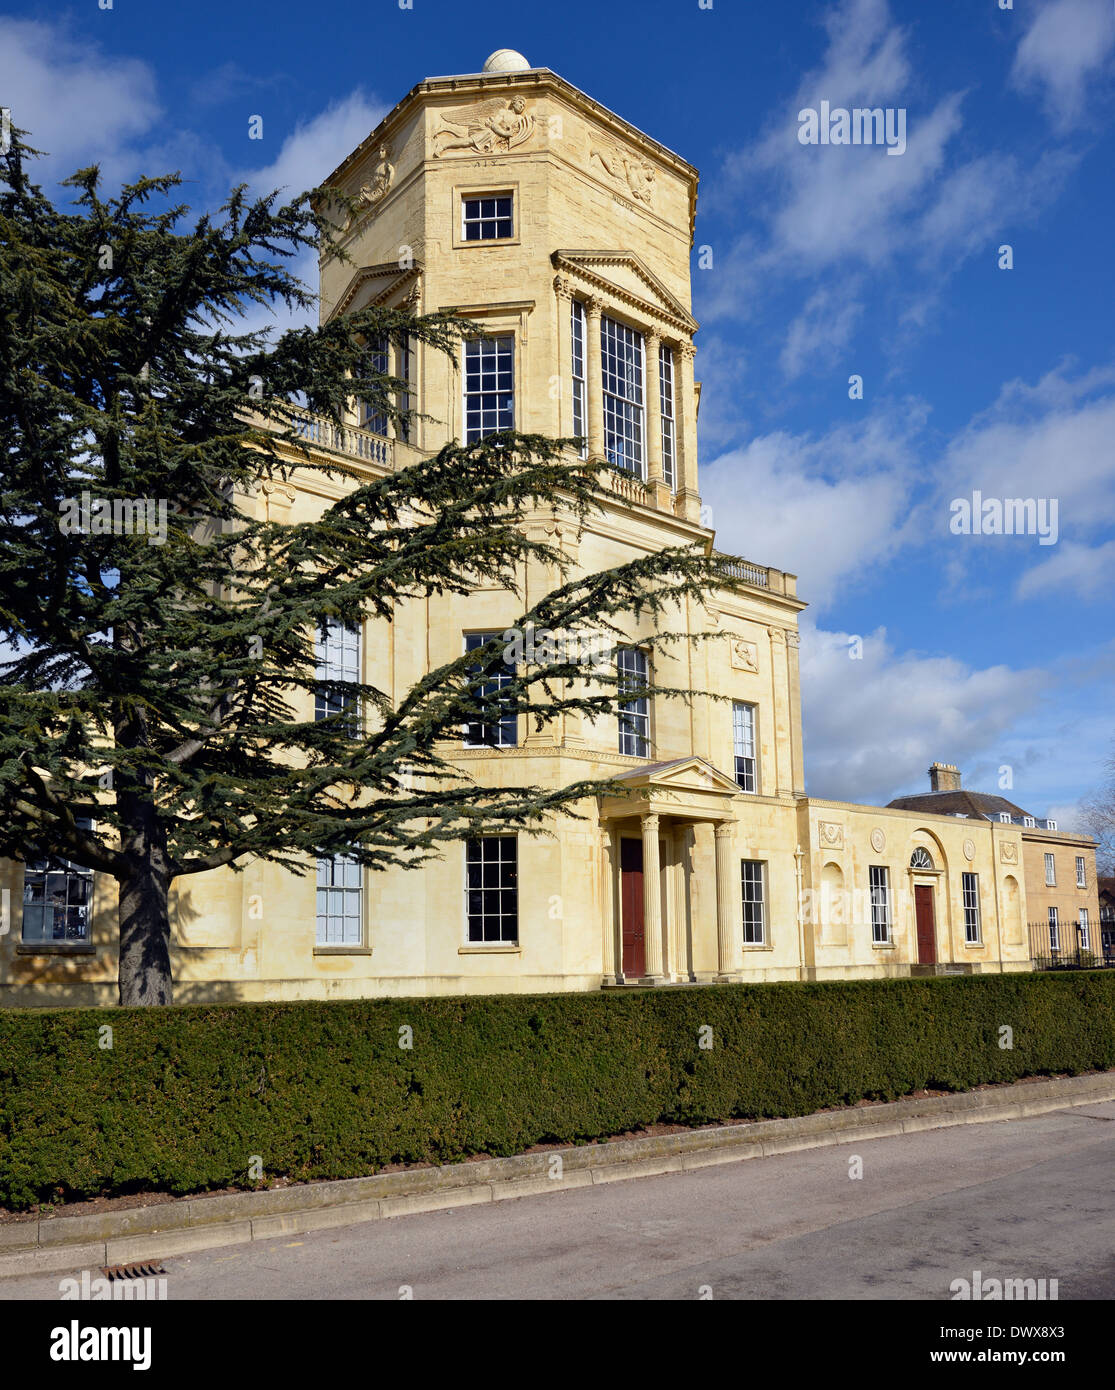 Tower of the Winds, Green Templeton College, Oxford University - Stock Image